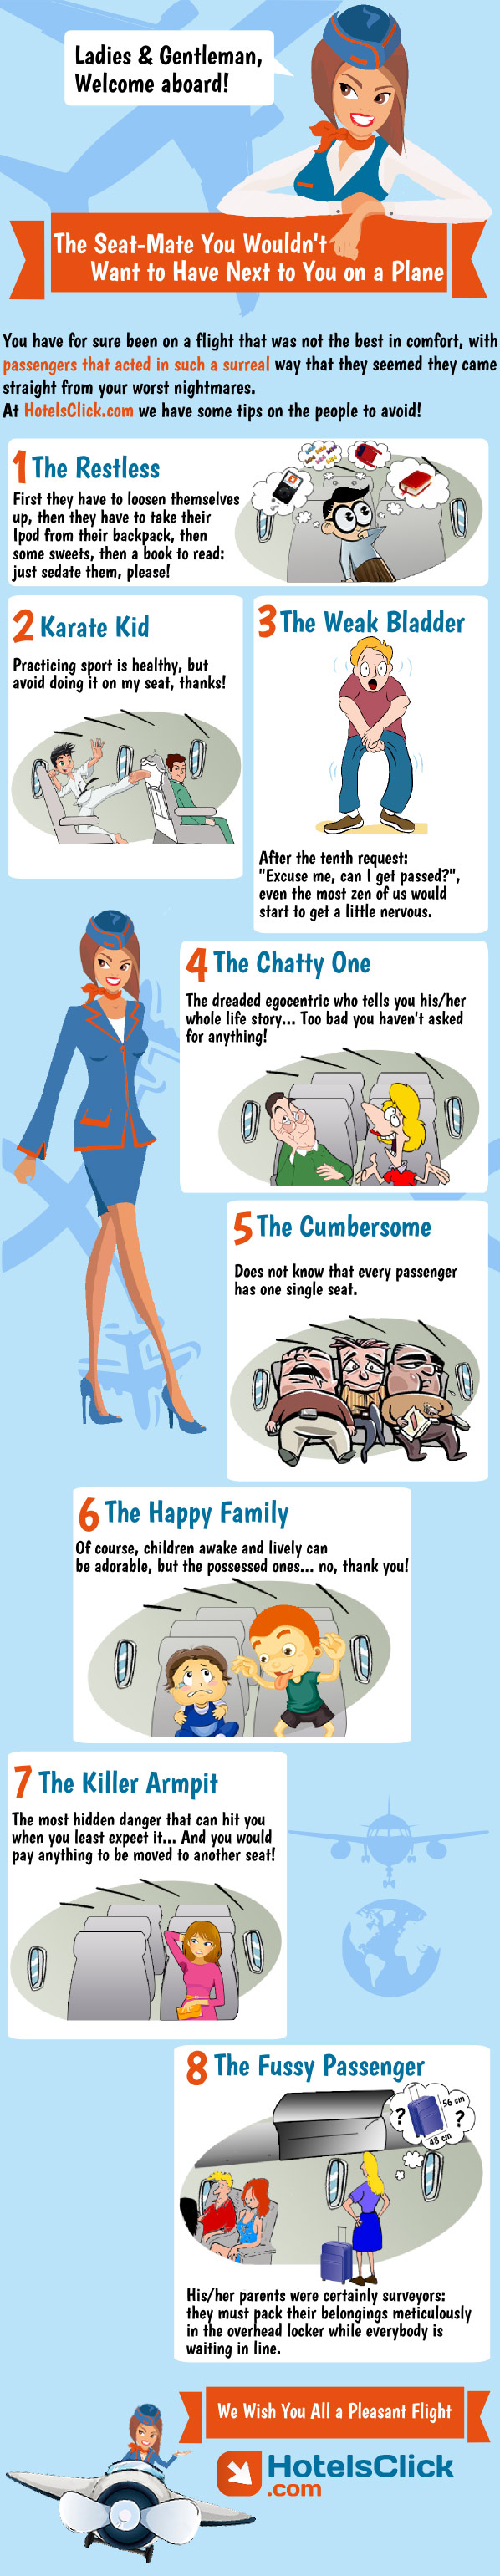 The worst airplane seatmates Infographic by Hotelsclick.com